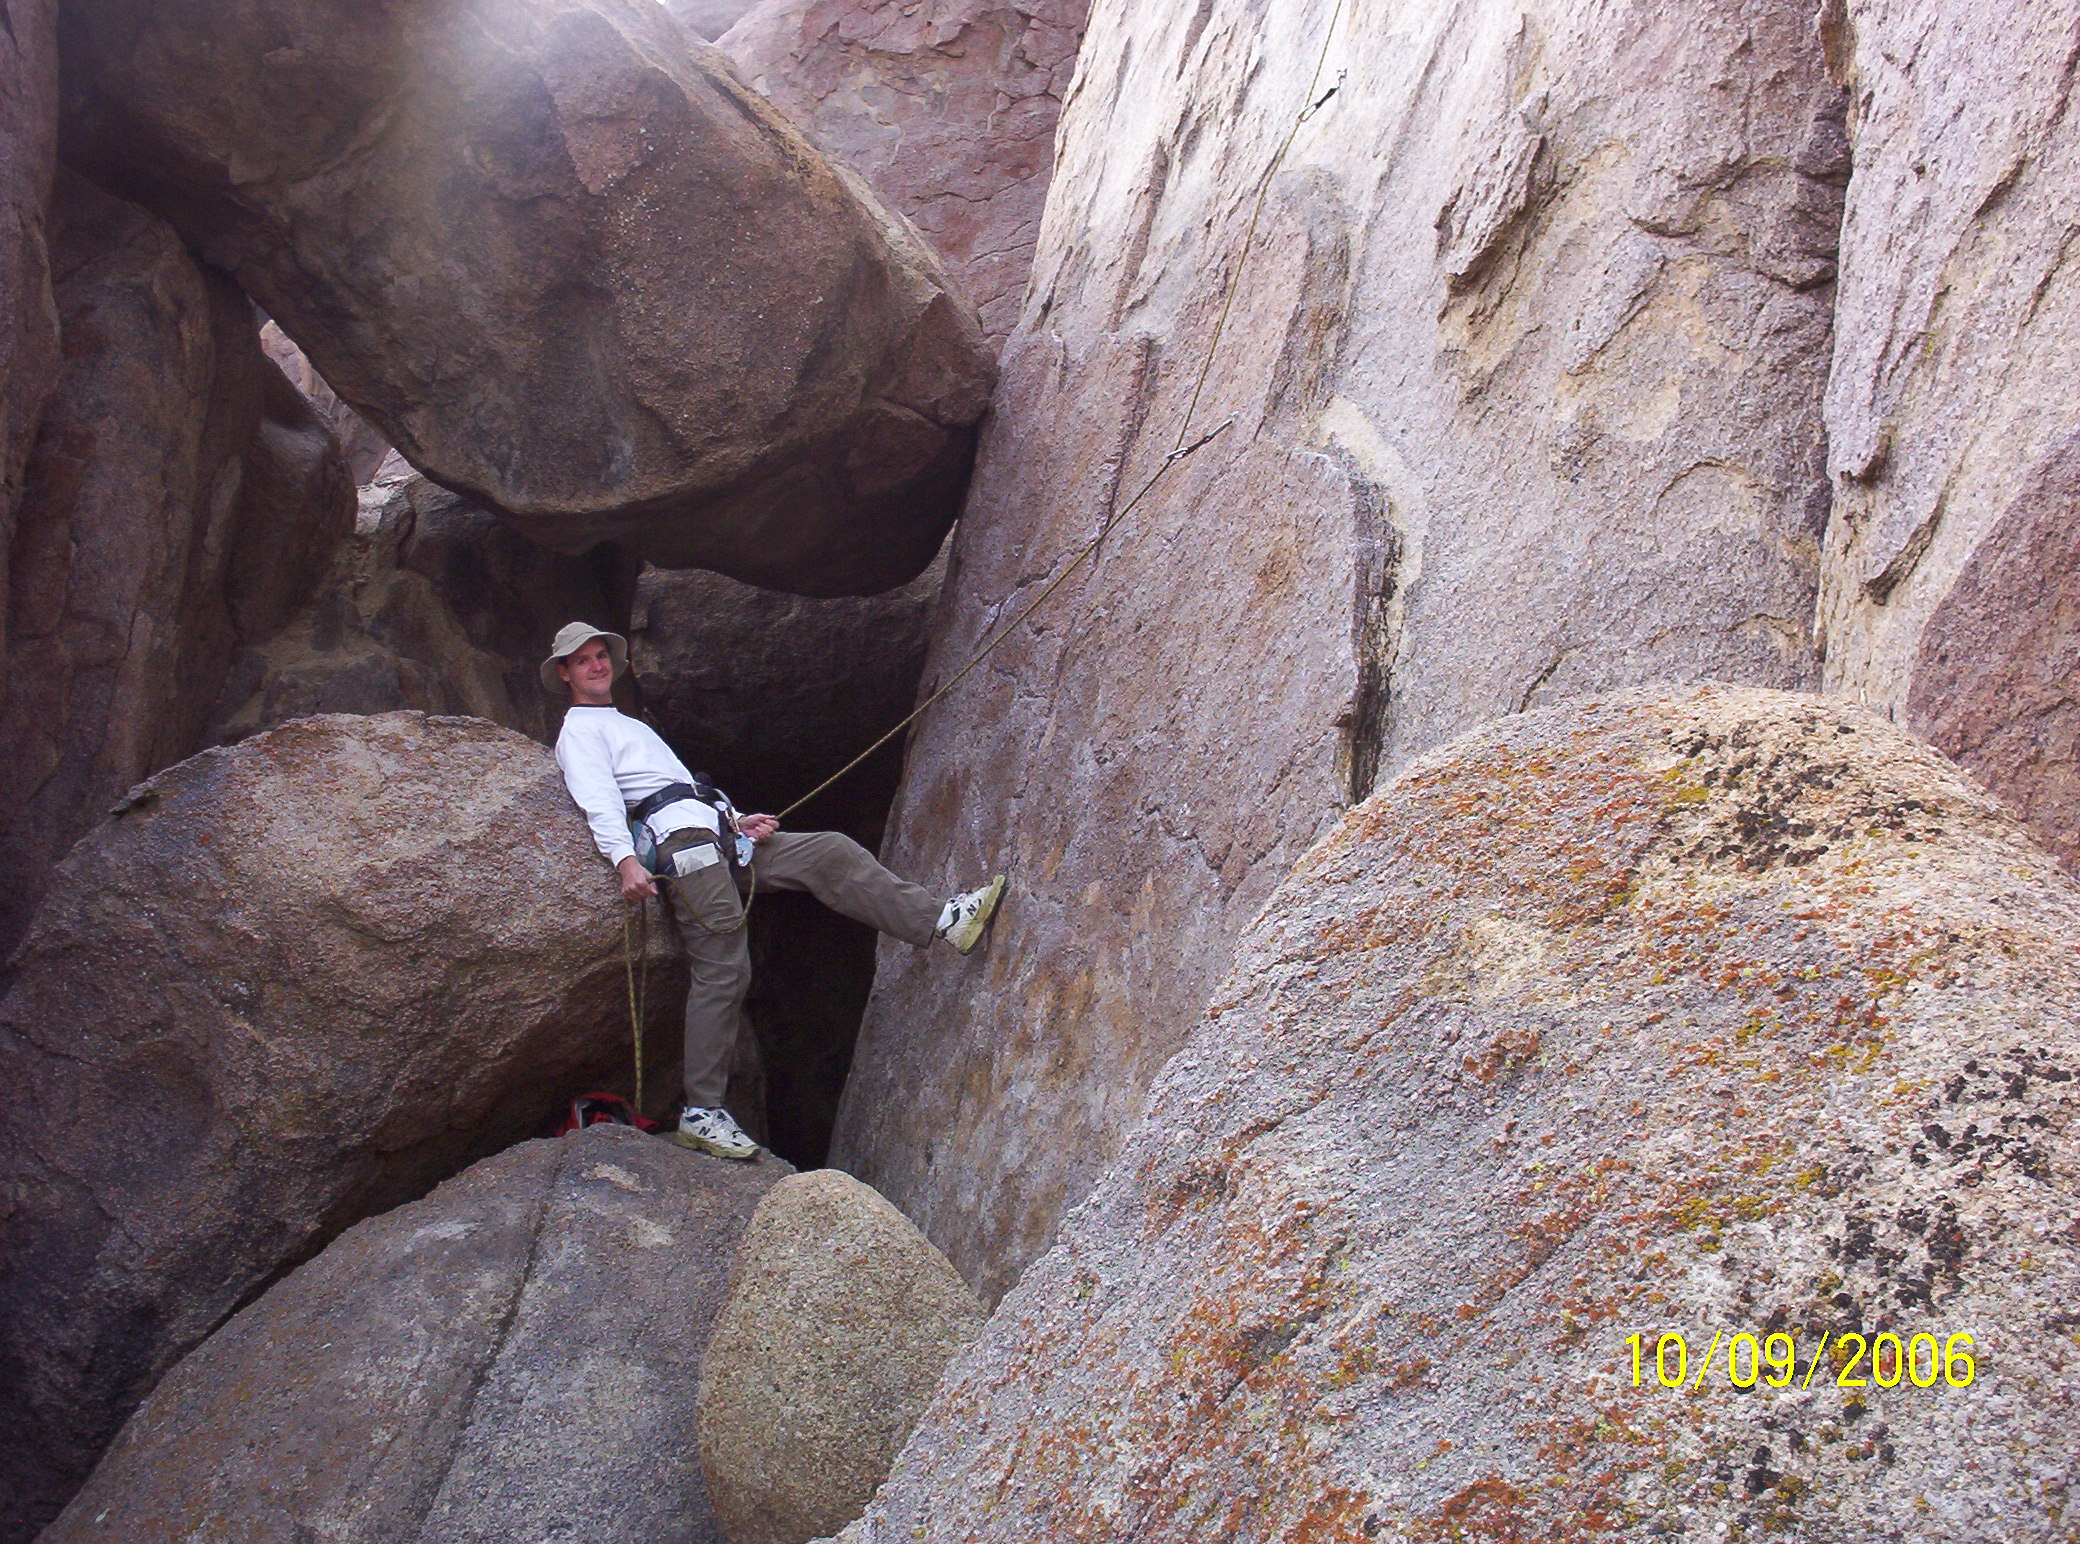 Dennis Belaying Clare on 44D